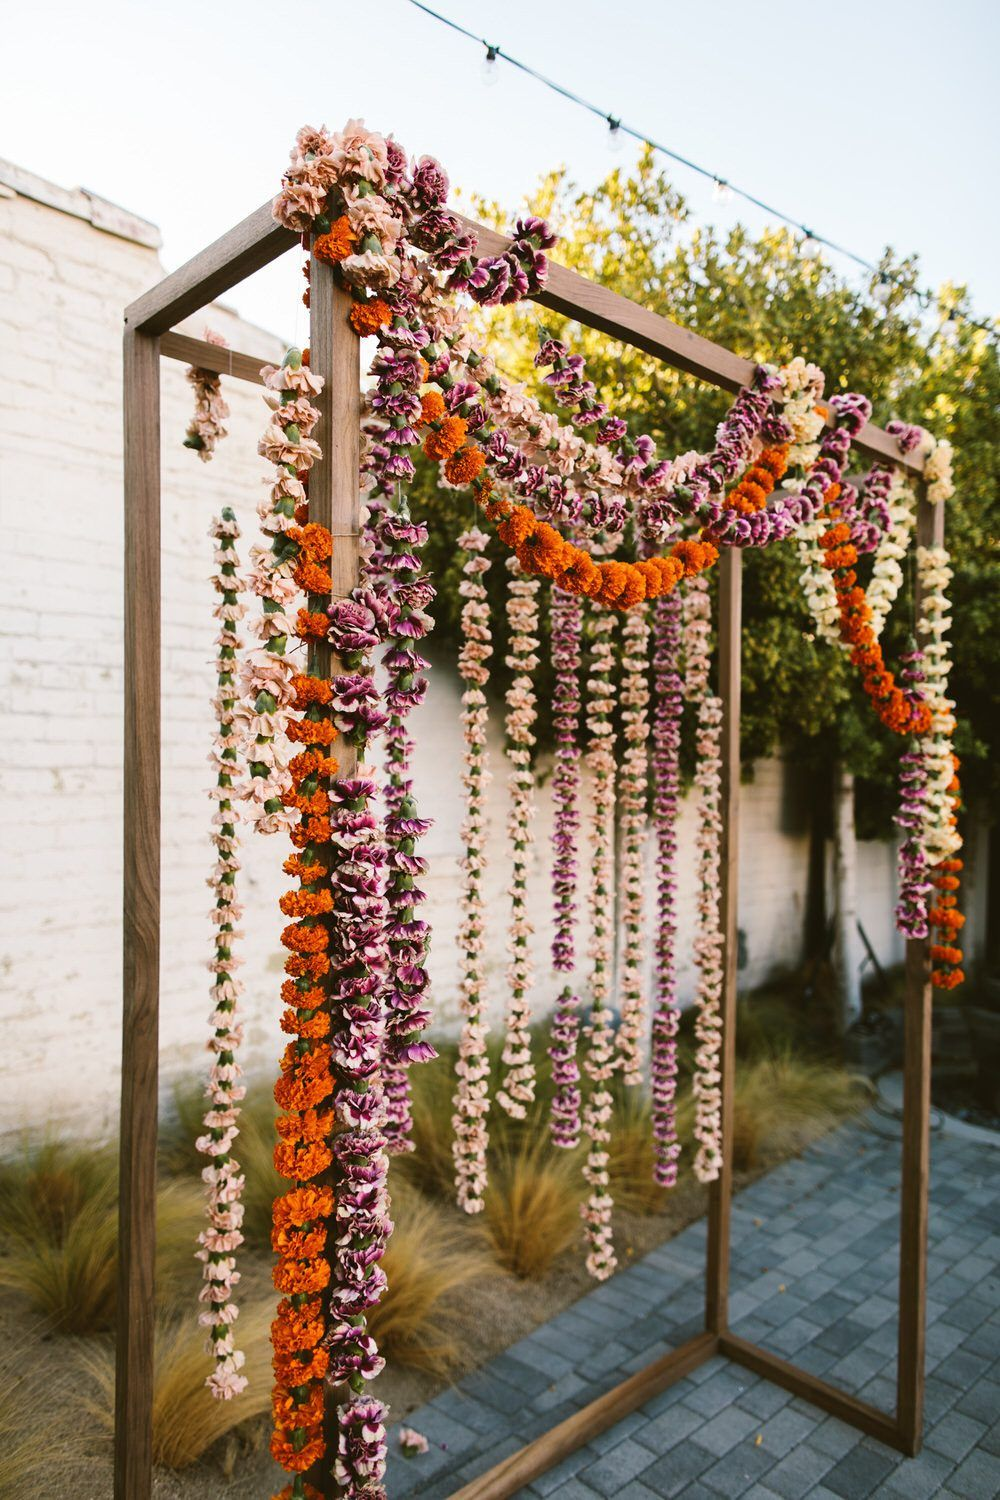 Bursting with blush, amber and orange marigolds, this Palm Springs wedding is all about the saturated summer hues and fruity accents. Southern California wedding vendors have truly outdone themselves with this one!